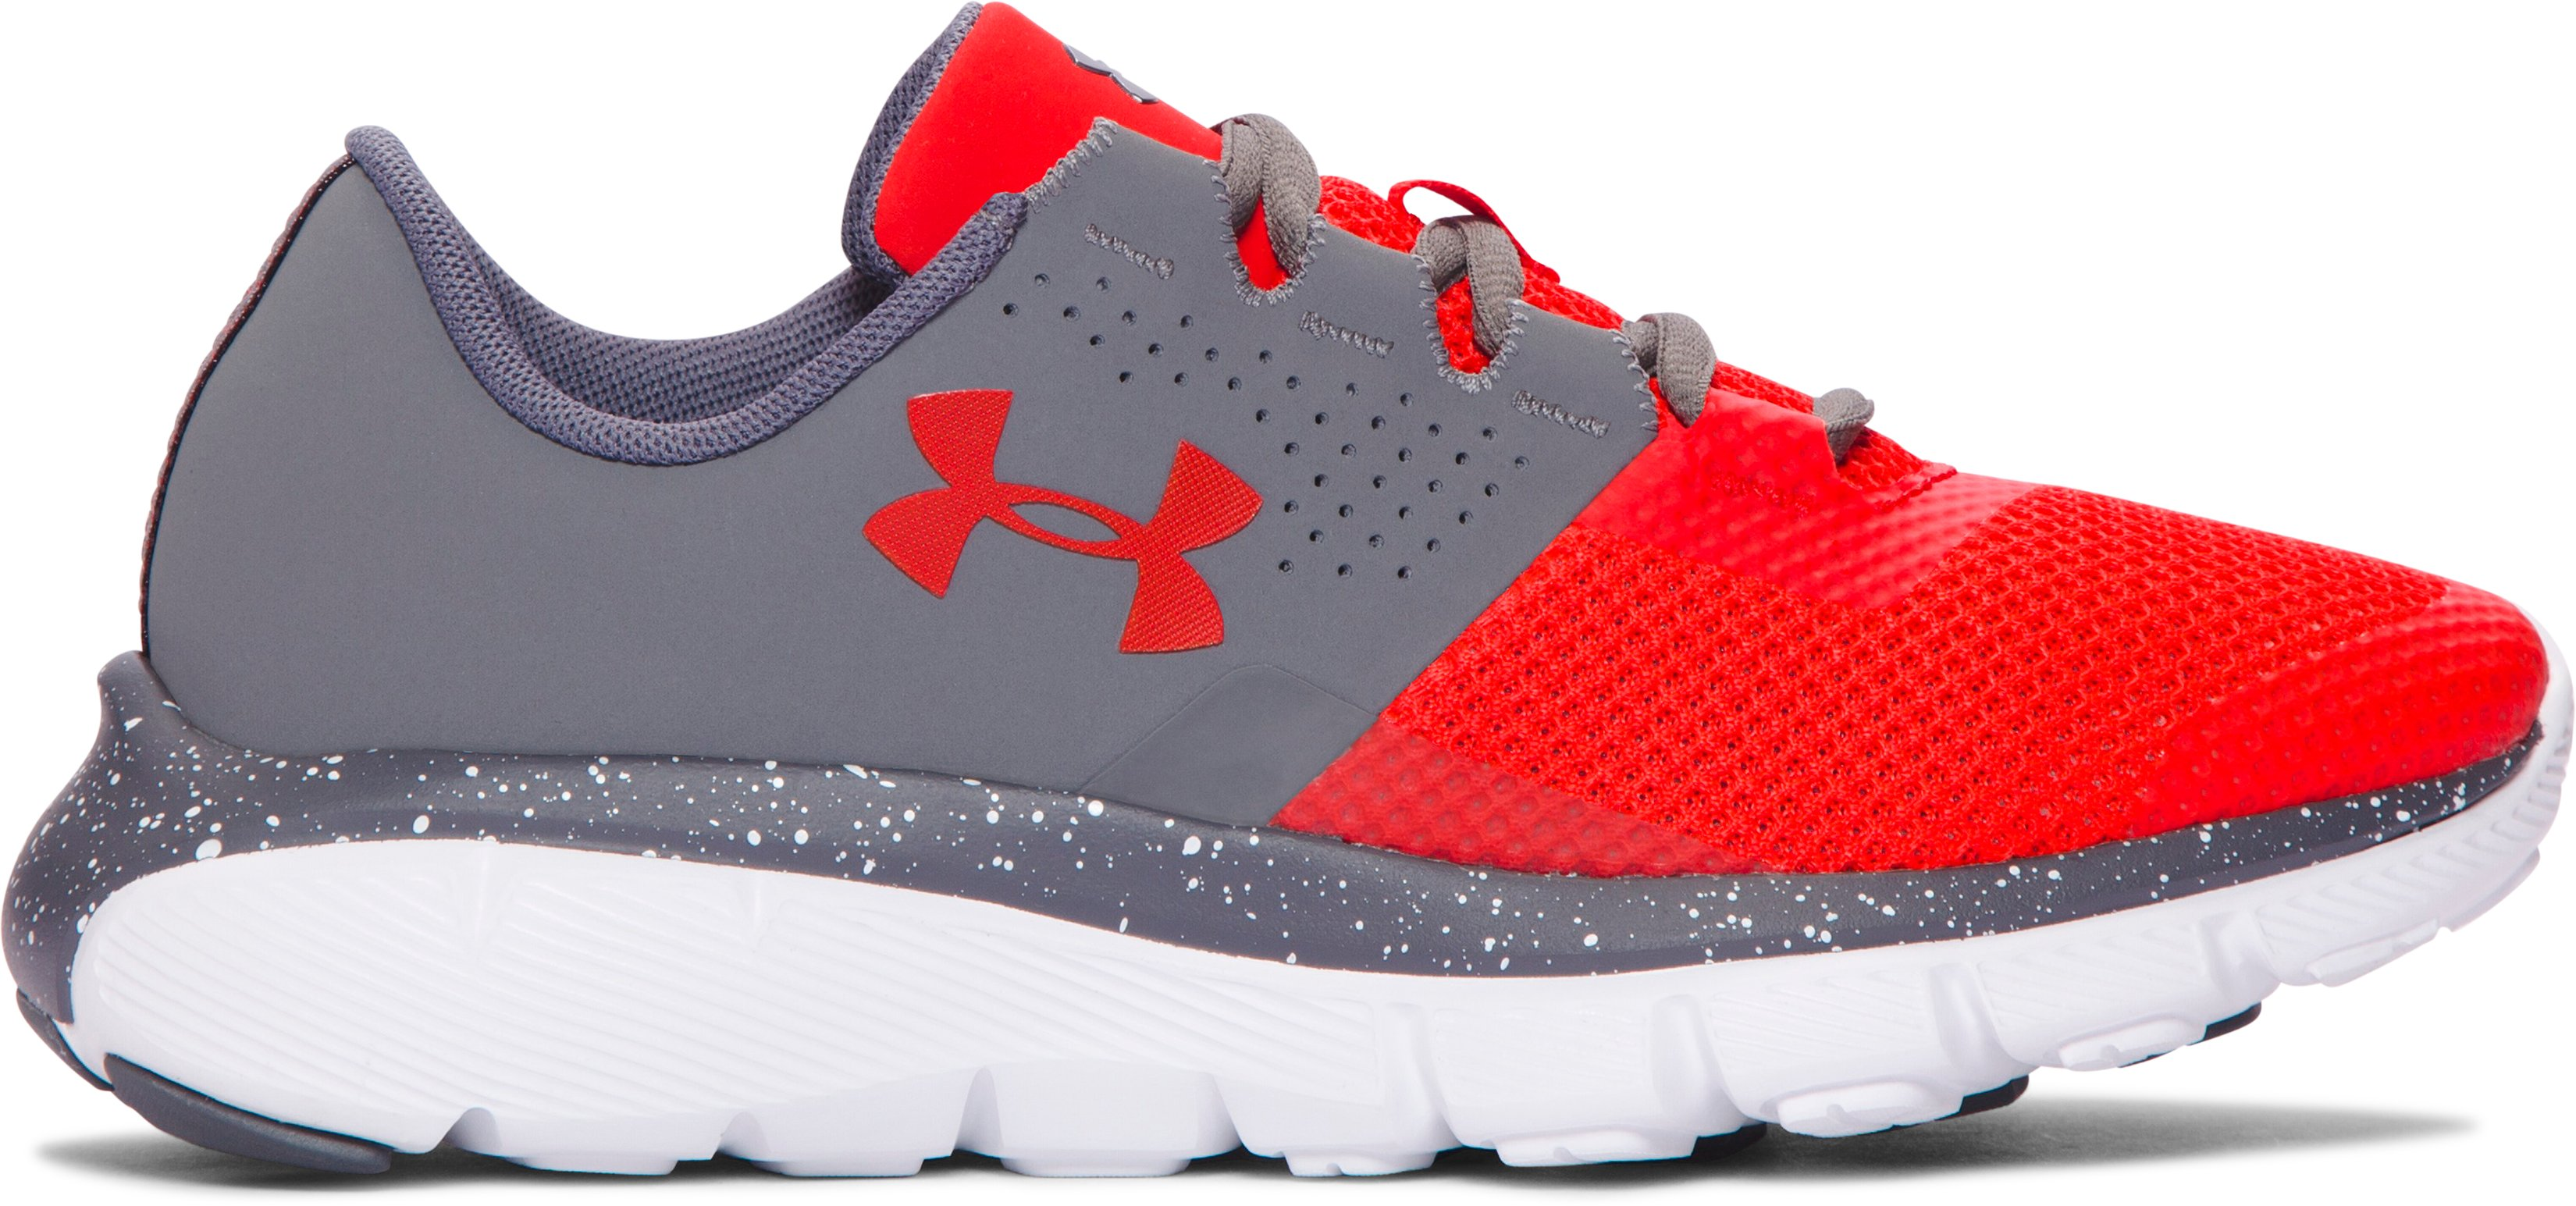 Boys' Grade School UA Fortis 2 Speckle Running Shoes, Graphite